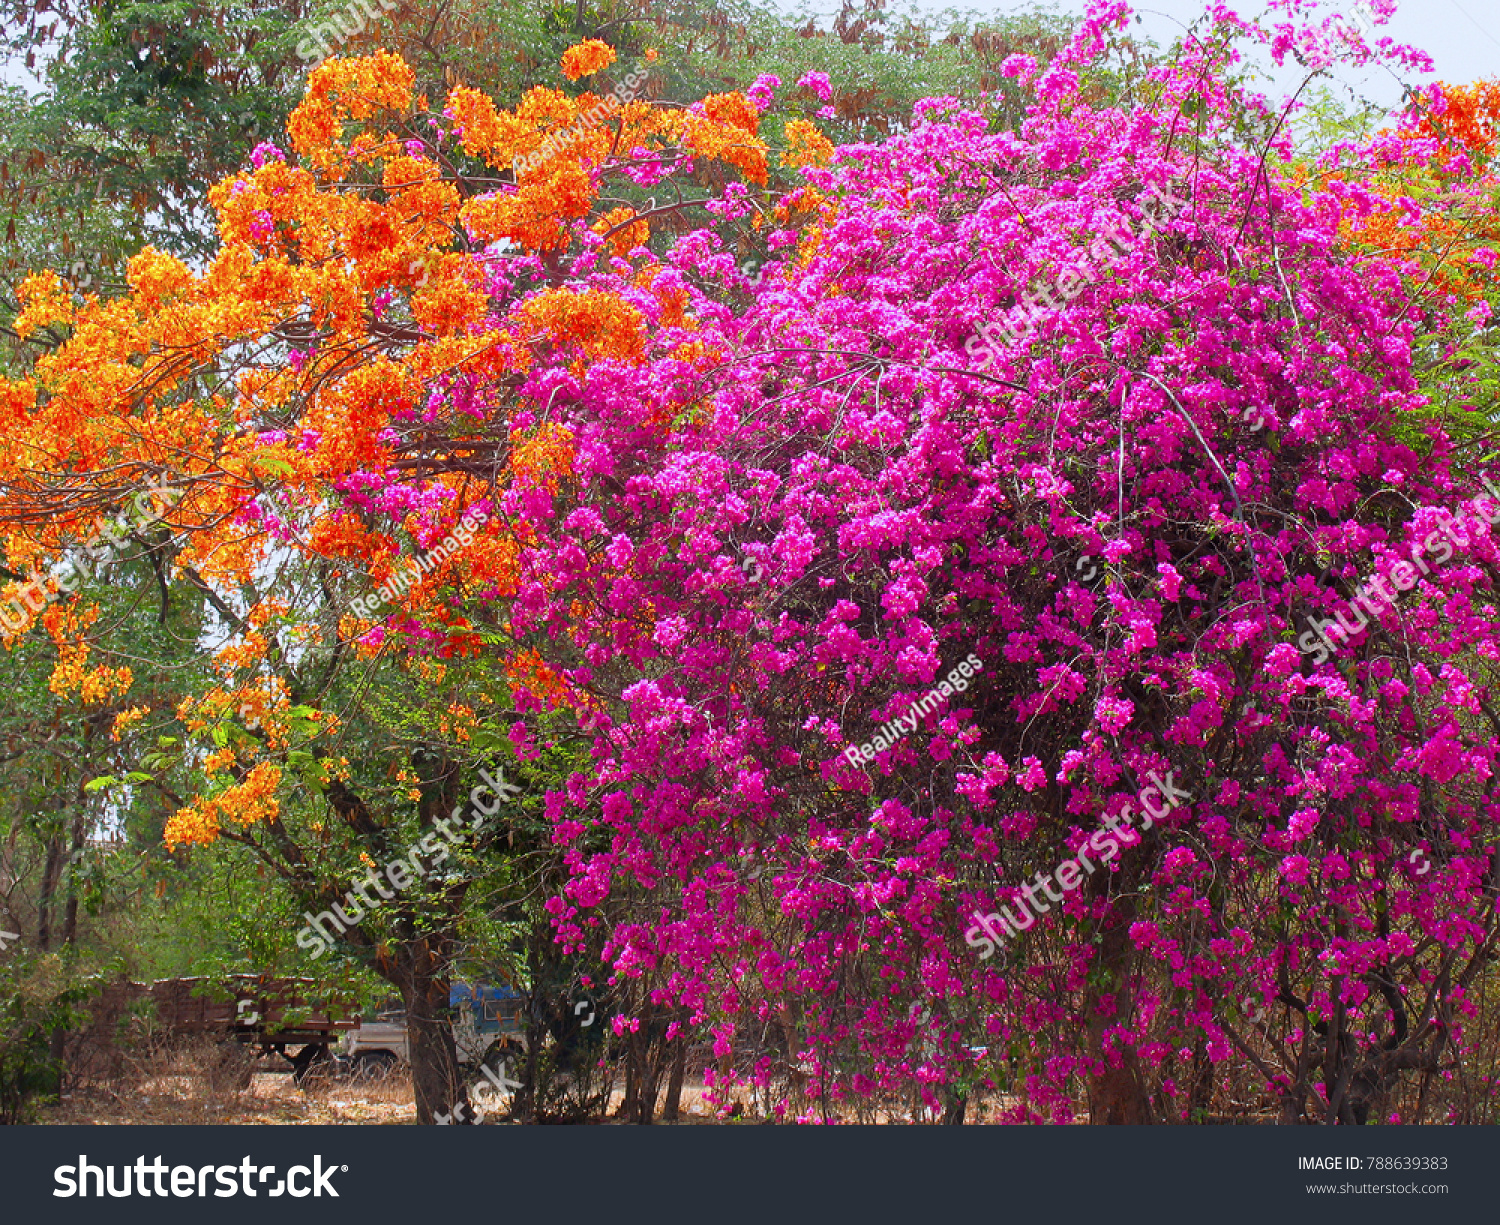 Bougainvillea Family Nyctaginaceae Shrubs Tropical Tender Perennials